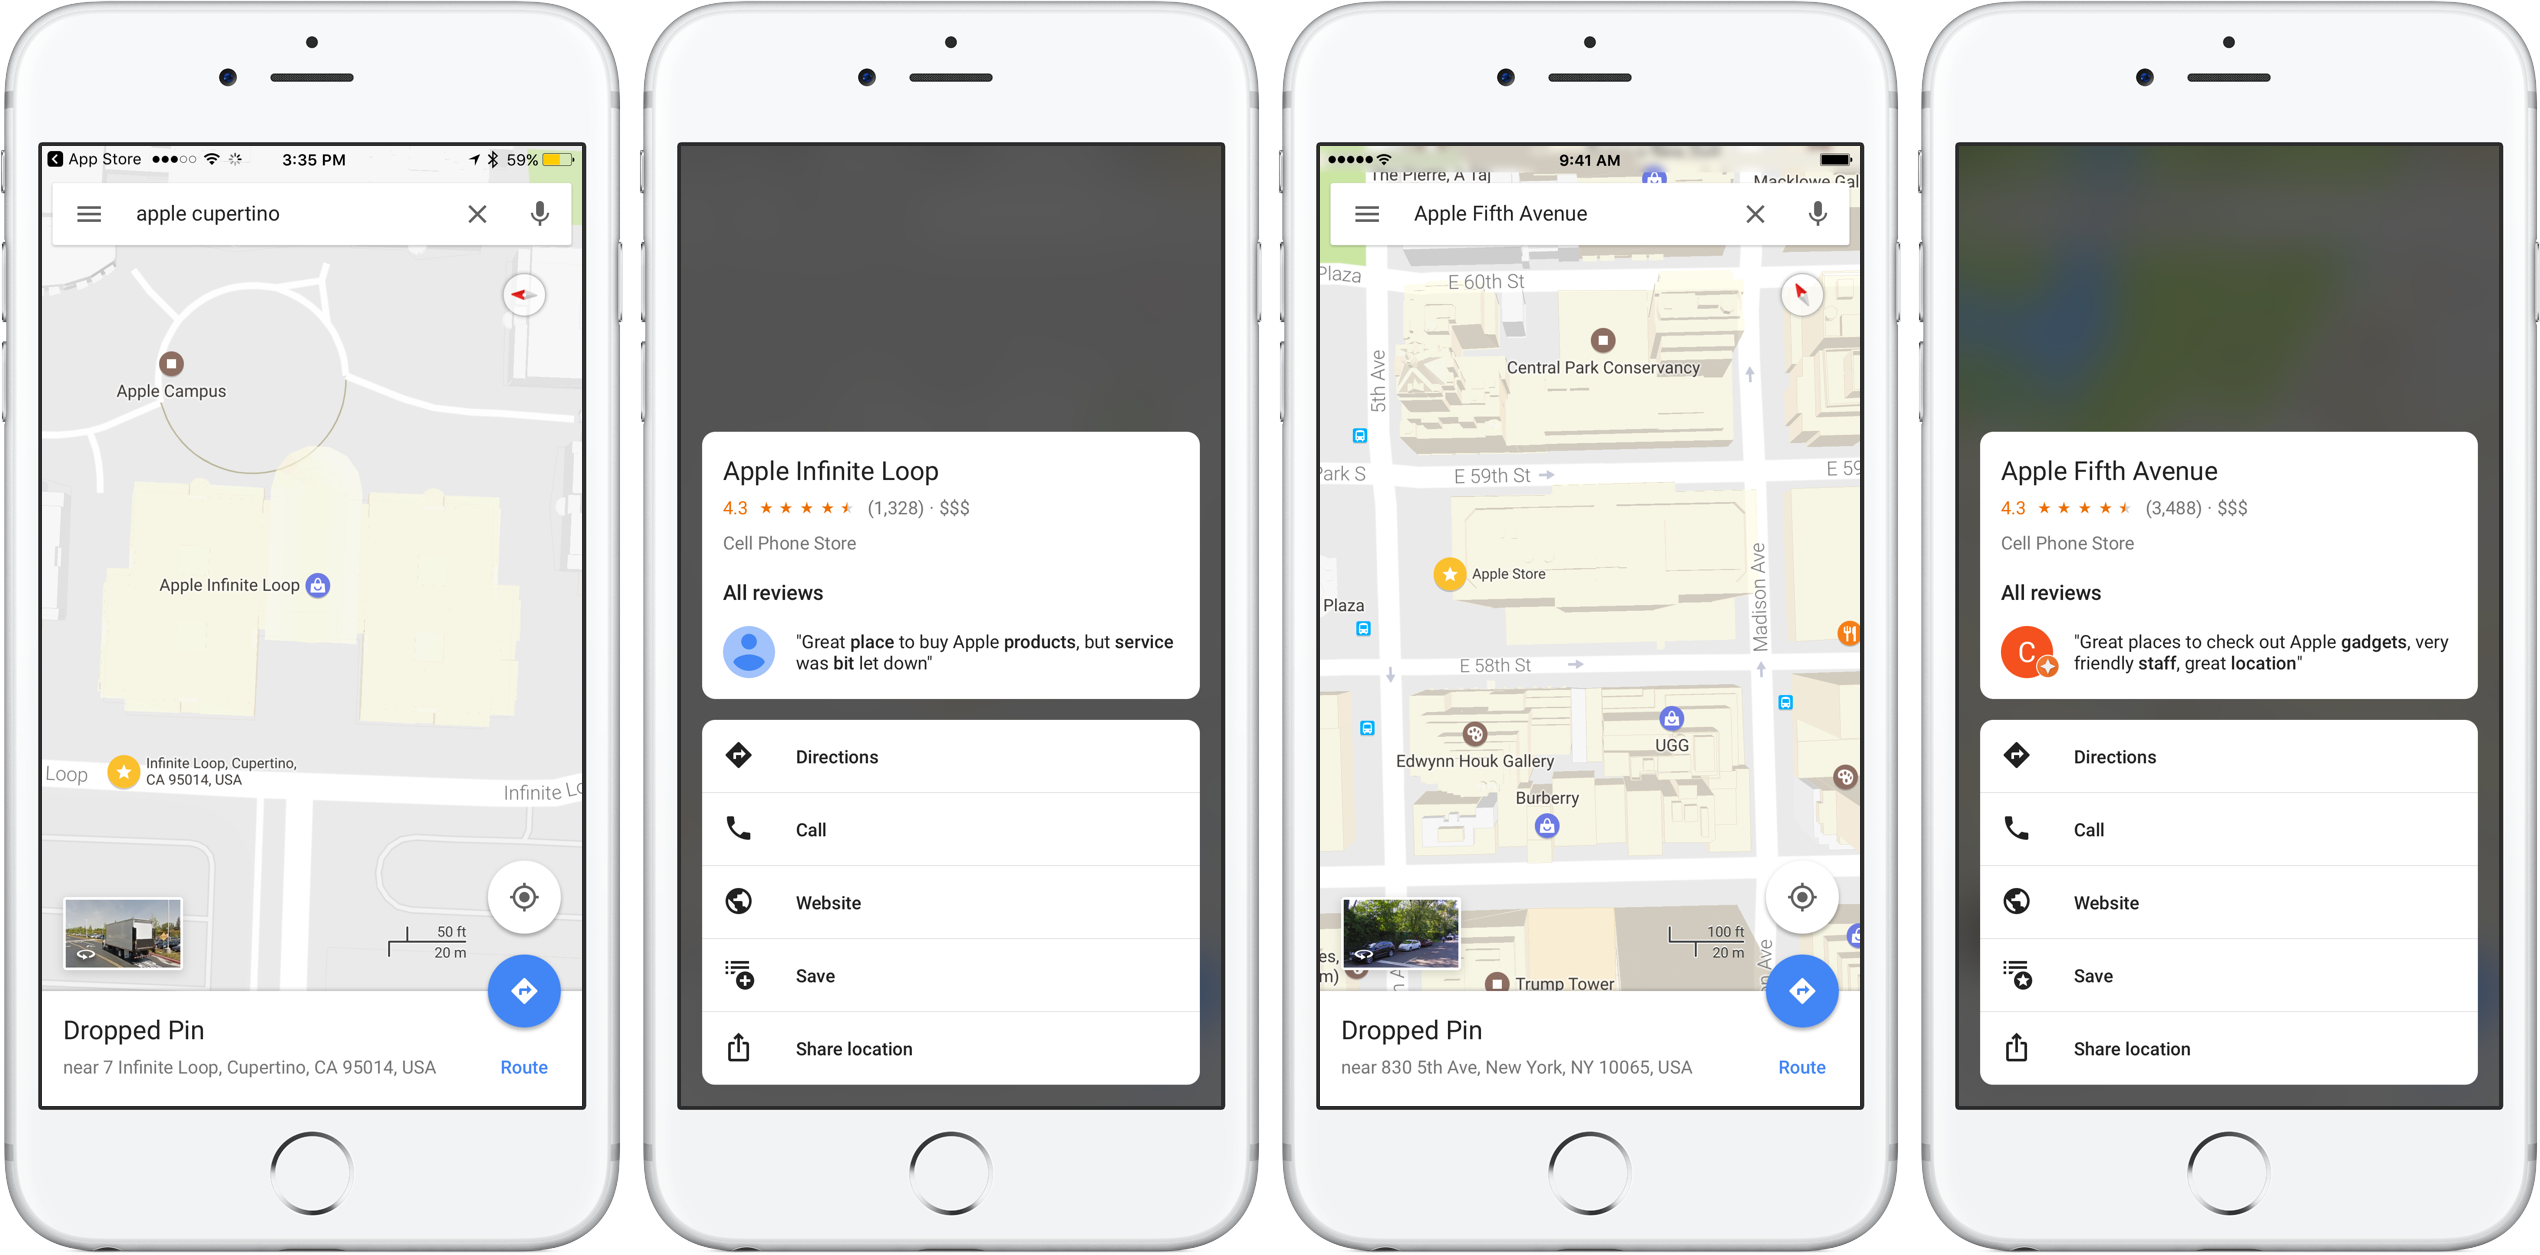 Google Maps gains 3D Touch place previews on twitter for iphone, qr codes for iphone, map apps apple, minecraft pe app for iphone, tiny wings app for iphone, map apps for windows, itunes app for iphone, gps maps on iphone, map apps for tablets, navionics lake maps for iphone, map apps for mac, google maps for iphone, search for iphone, cloud storage for iphone, map apps for ipad 2, loop map my run iphone, map apps for kindle fire, map on iphone 4, map iphone 5 sales,